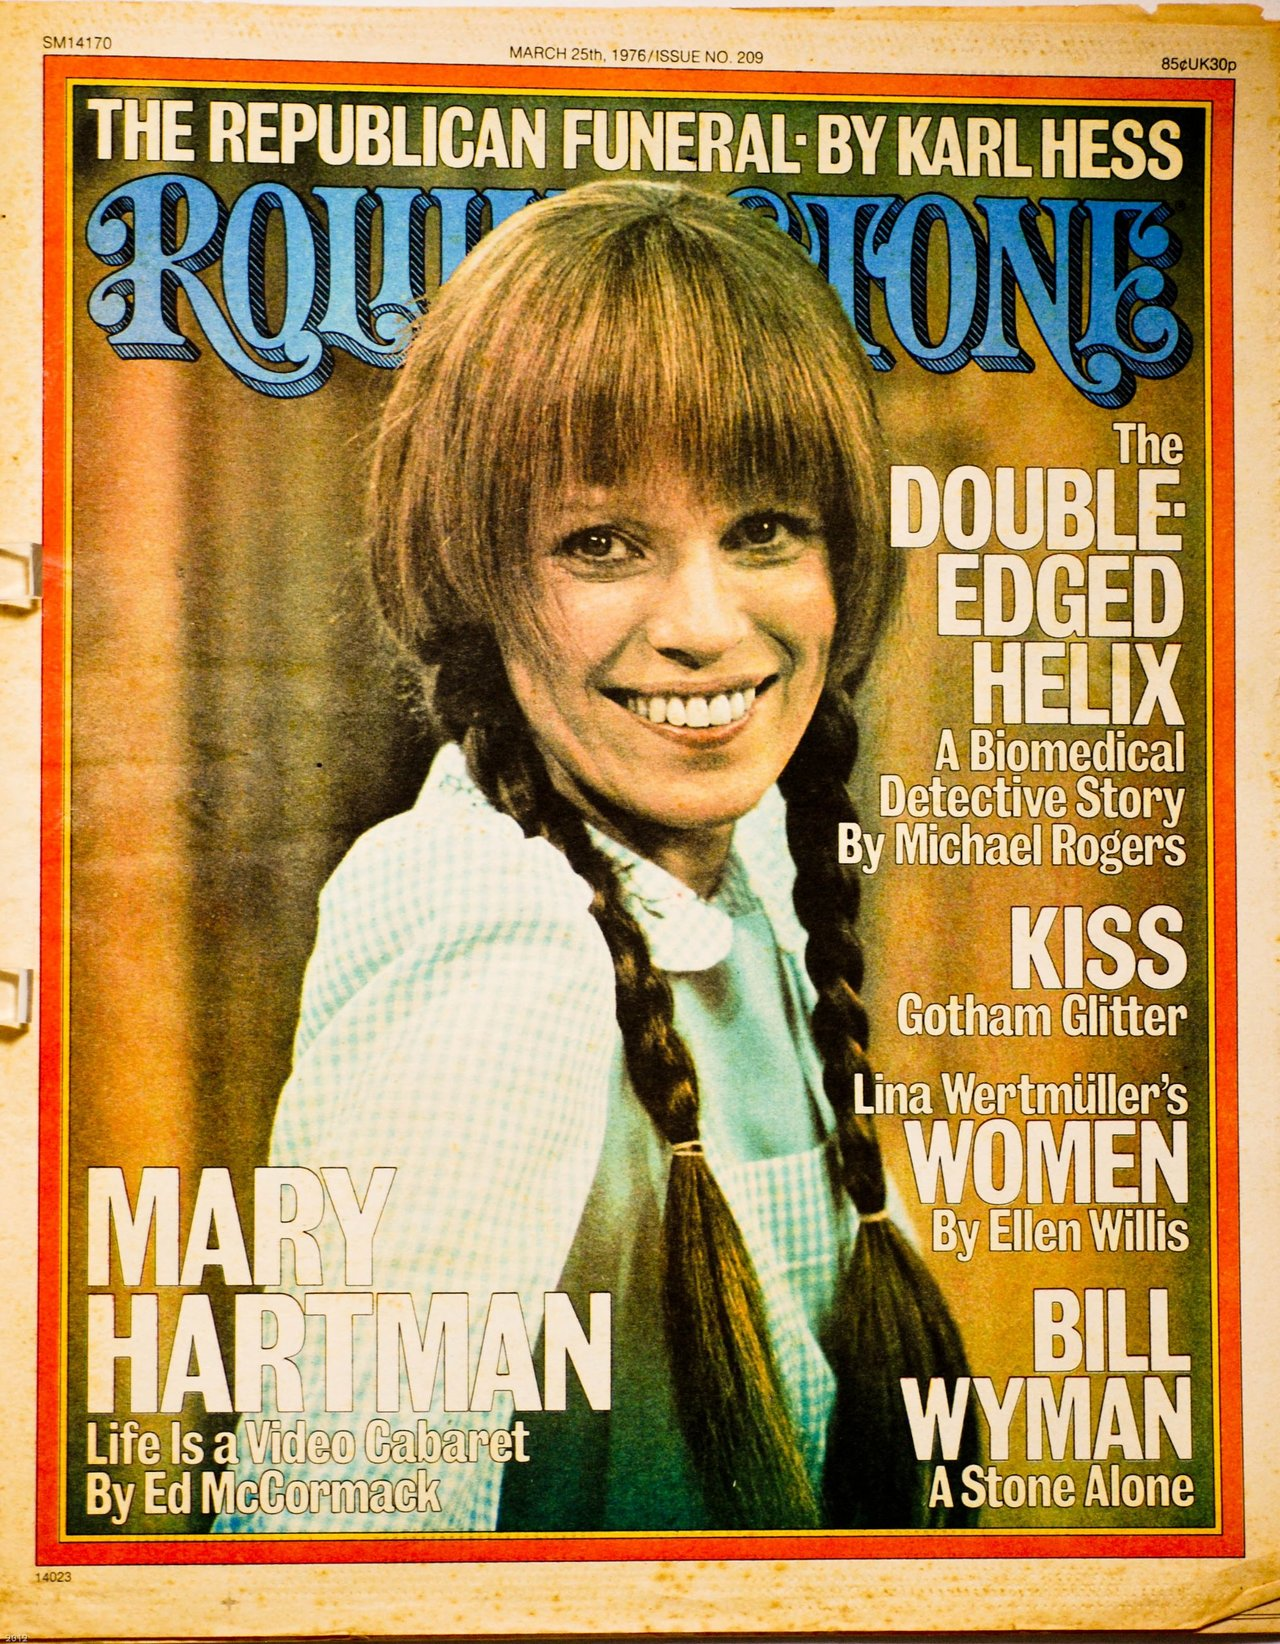 Lasser as Mary Hartman, cultural icon, on the cover of ROLLING STONE